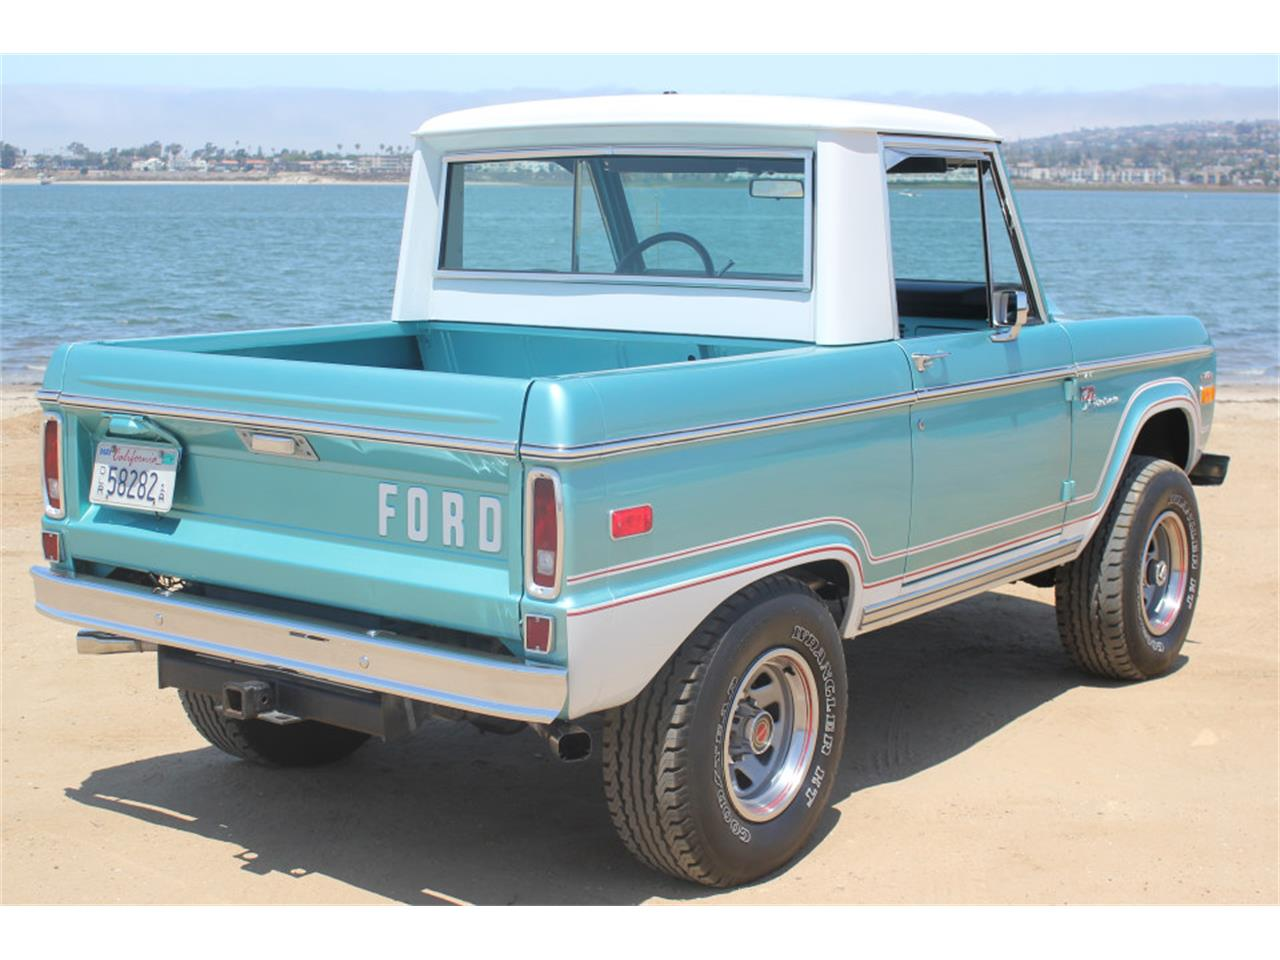 Ford Dealers San Diego >> 1970 Ford Bronco for Sale | ClassicCars.com | CC-996759